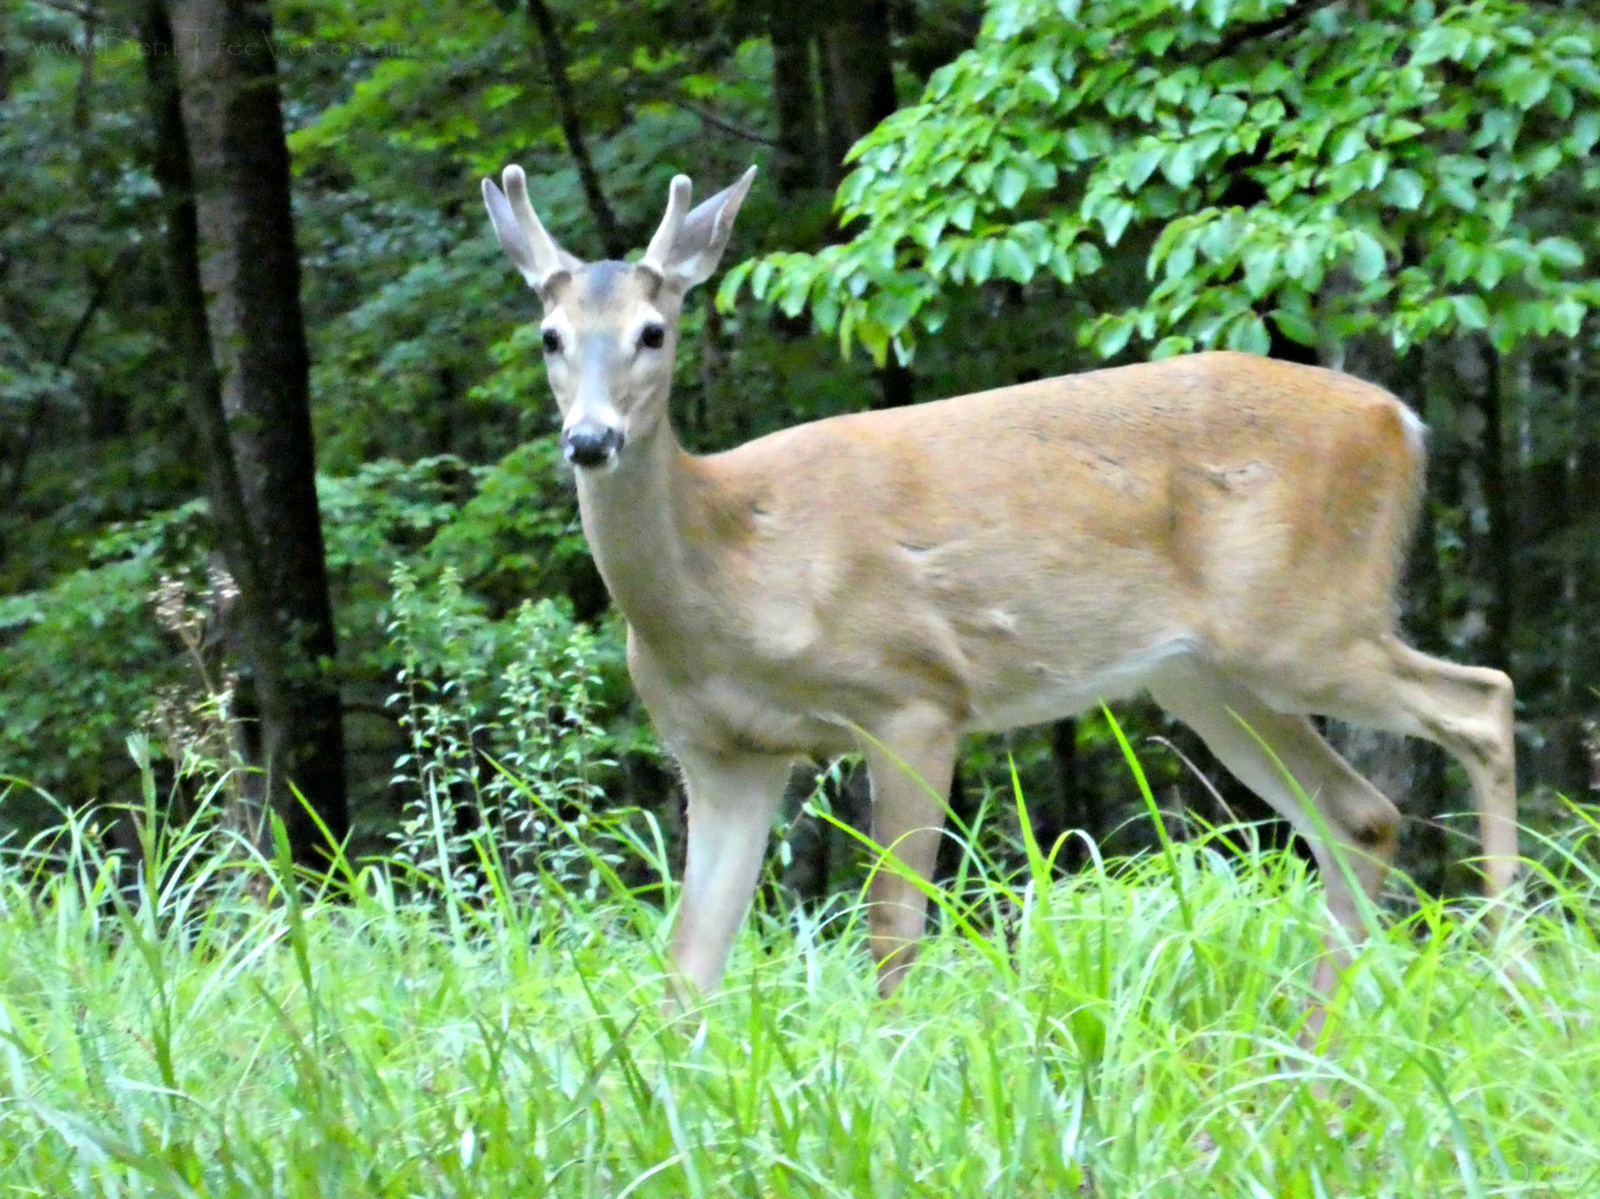 June 28, 2020 - Young Buck in Bent Tree